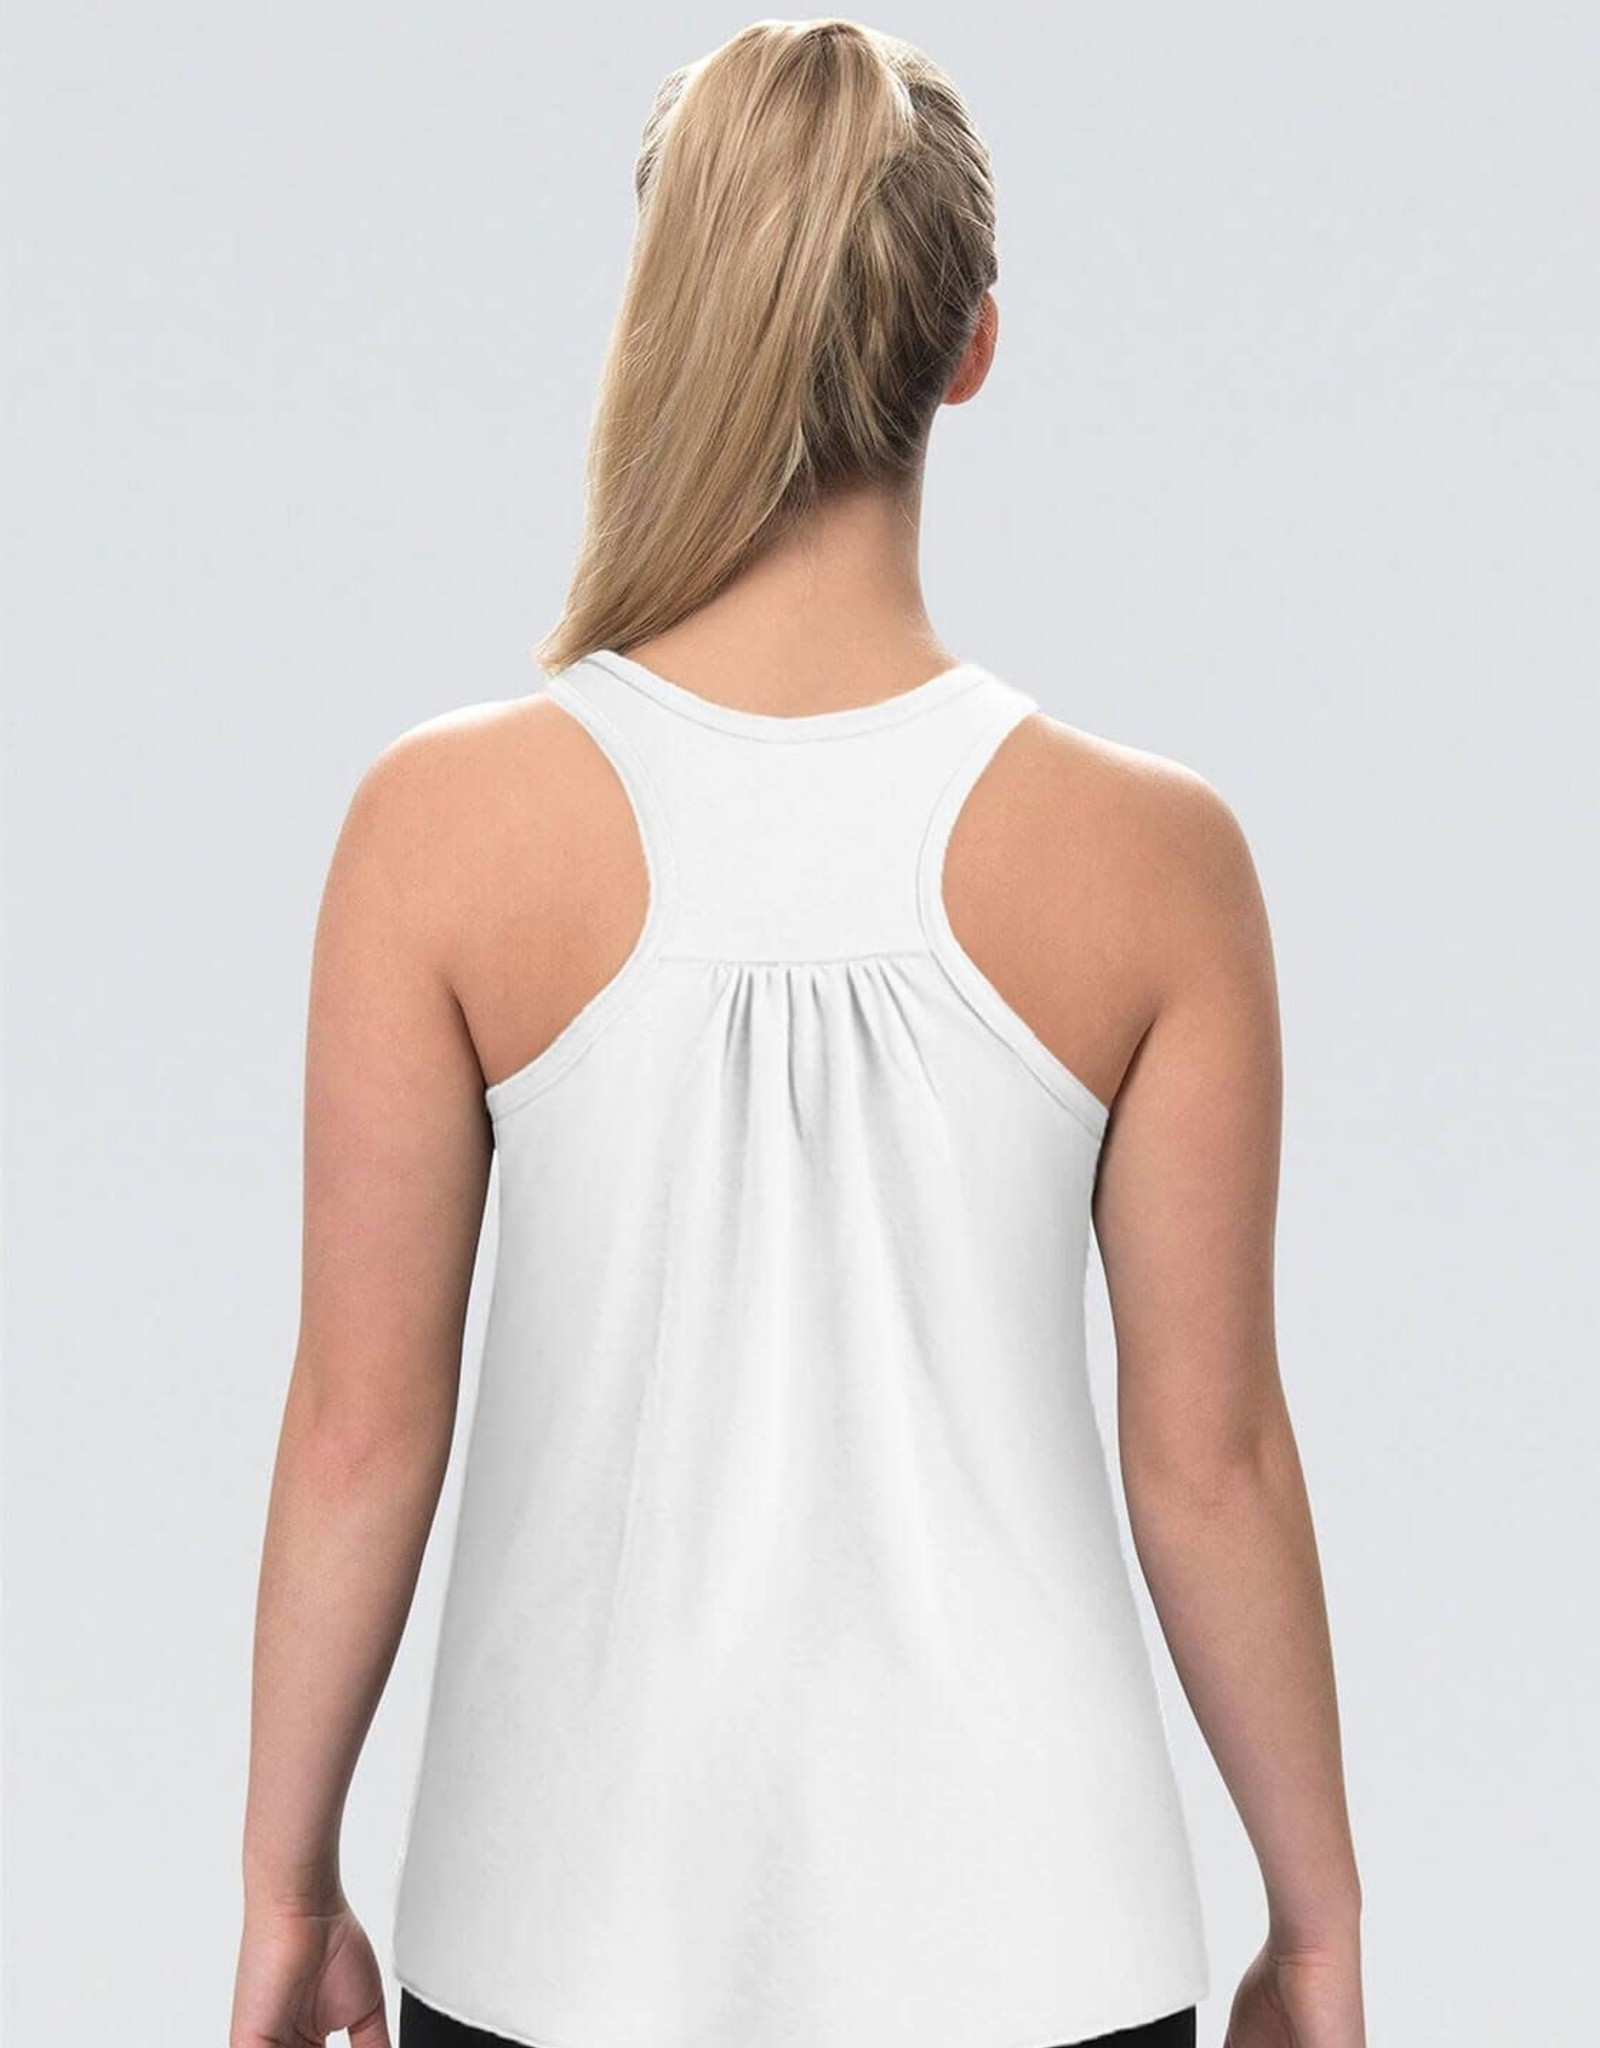 GK Elite L1308-Gymnast 2020 White Tank Top